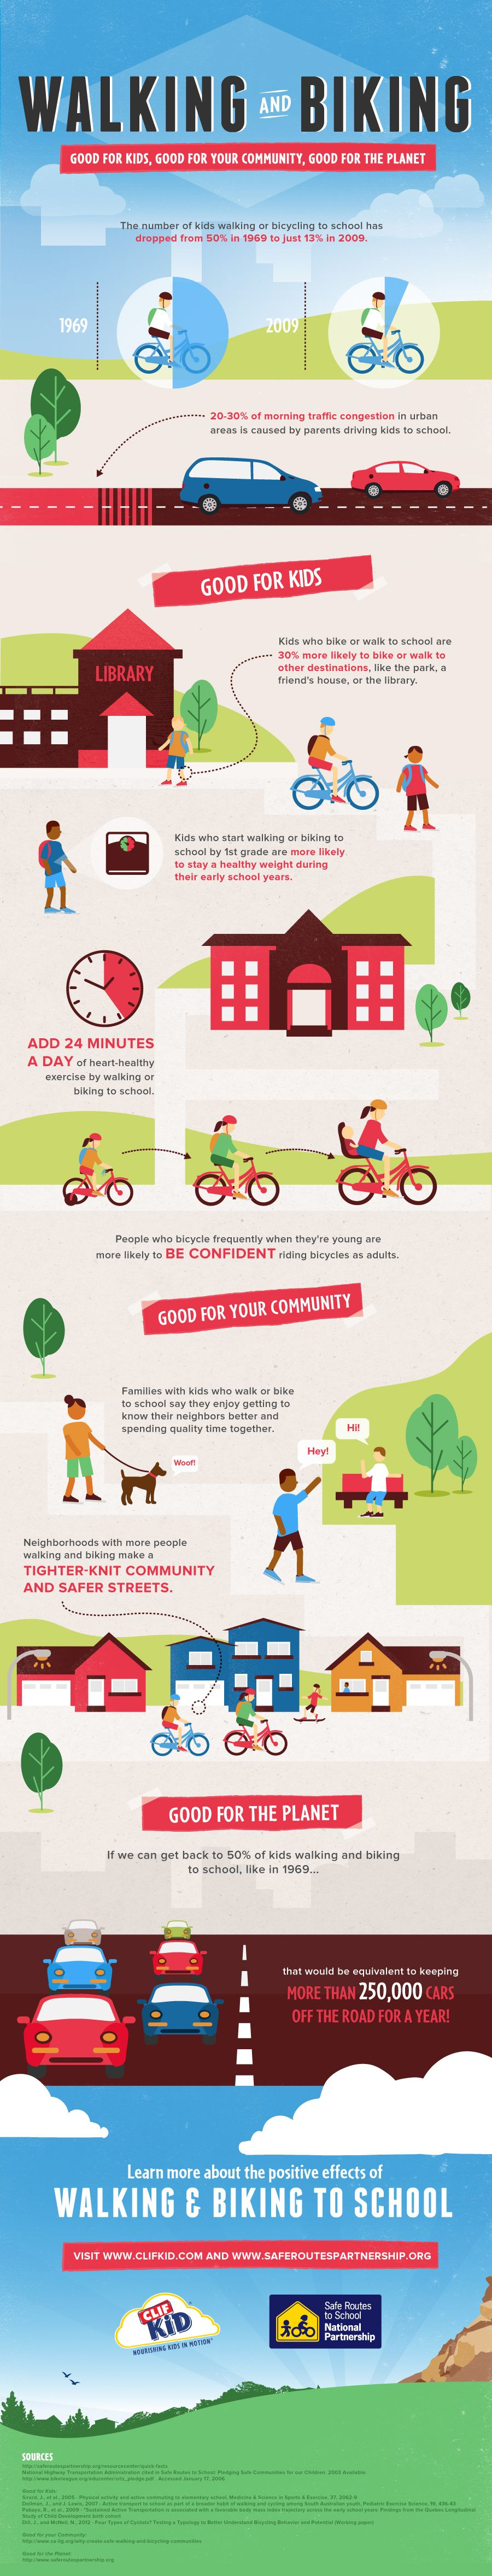 Walking And Biking To School Infographic Design By Home